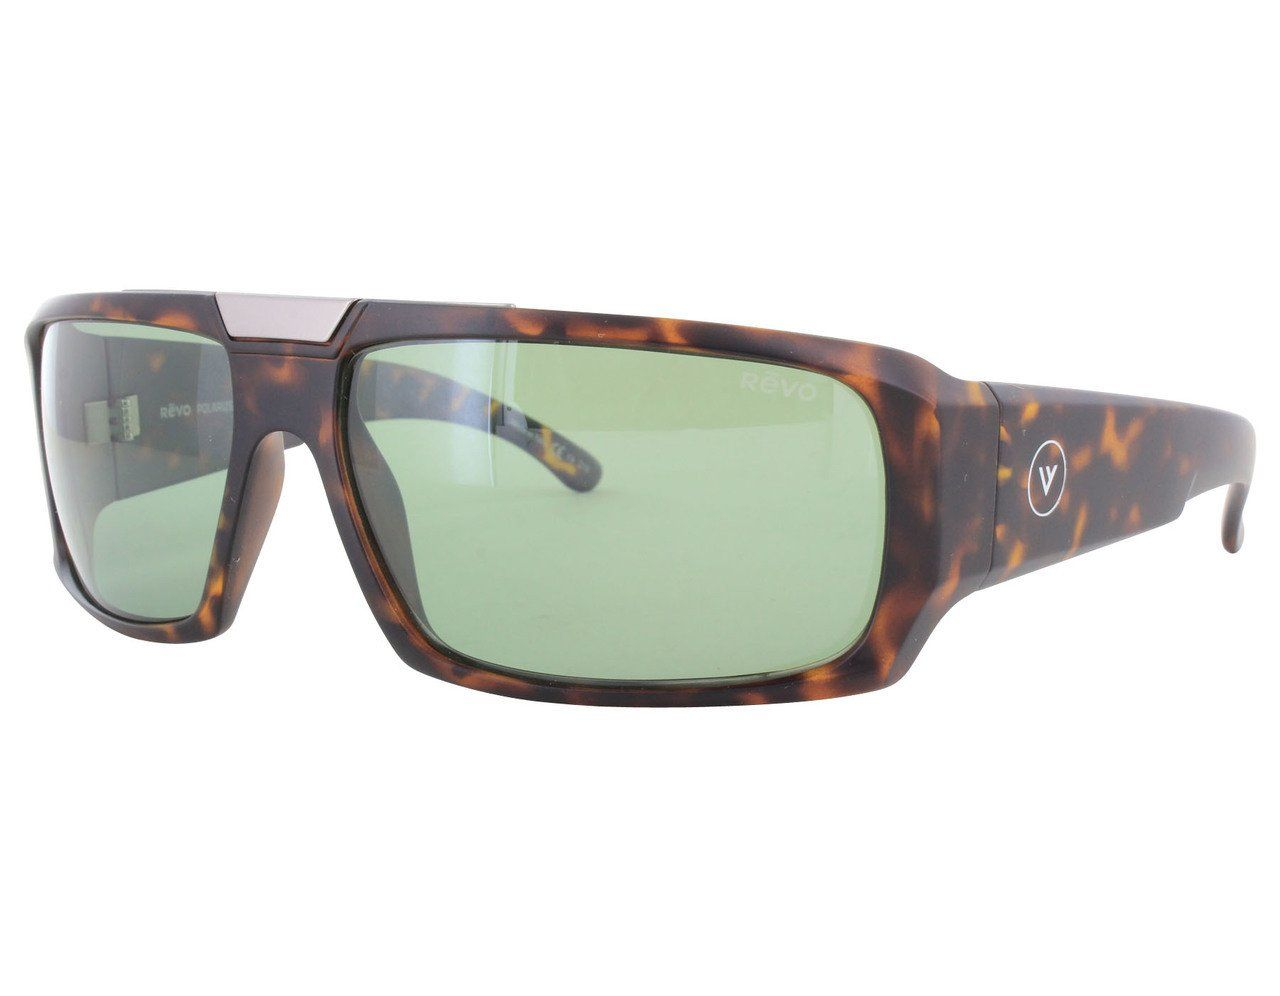 Revo Apollo 1004-02 BGR - Sunglasses - livesunglasses-com